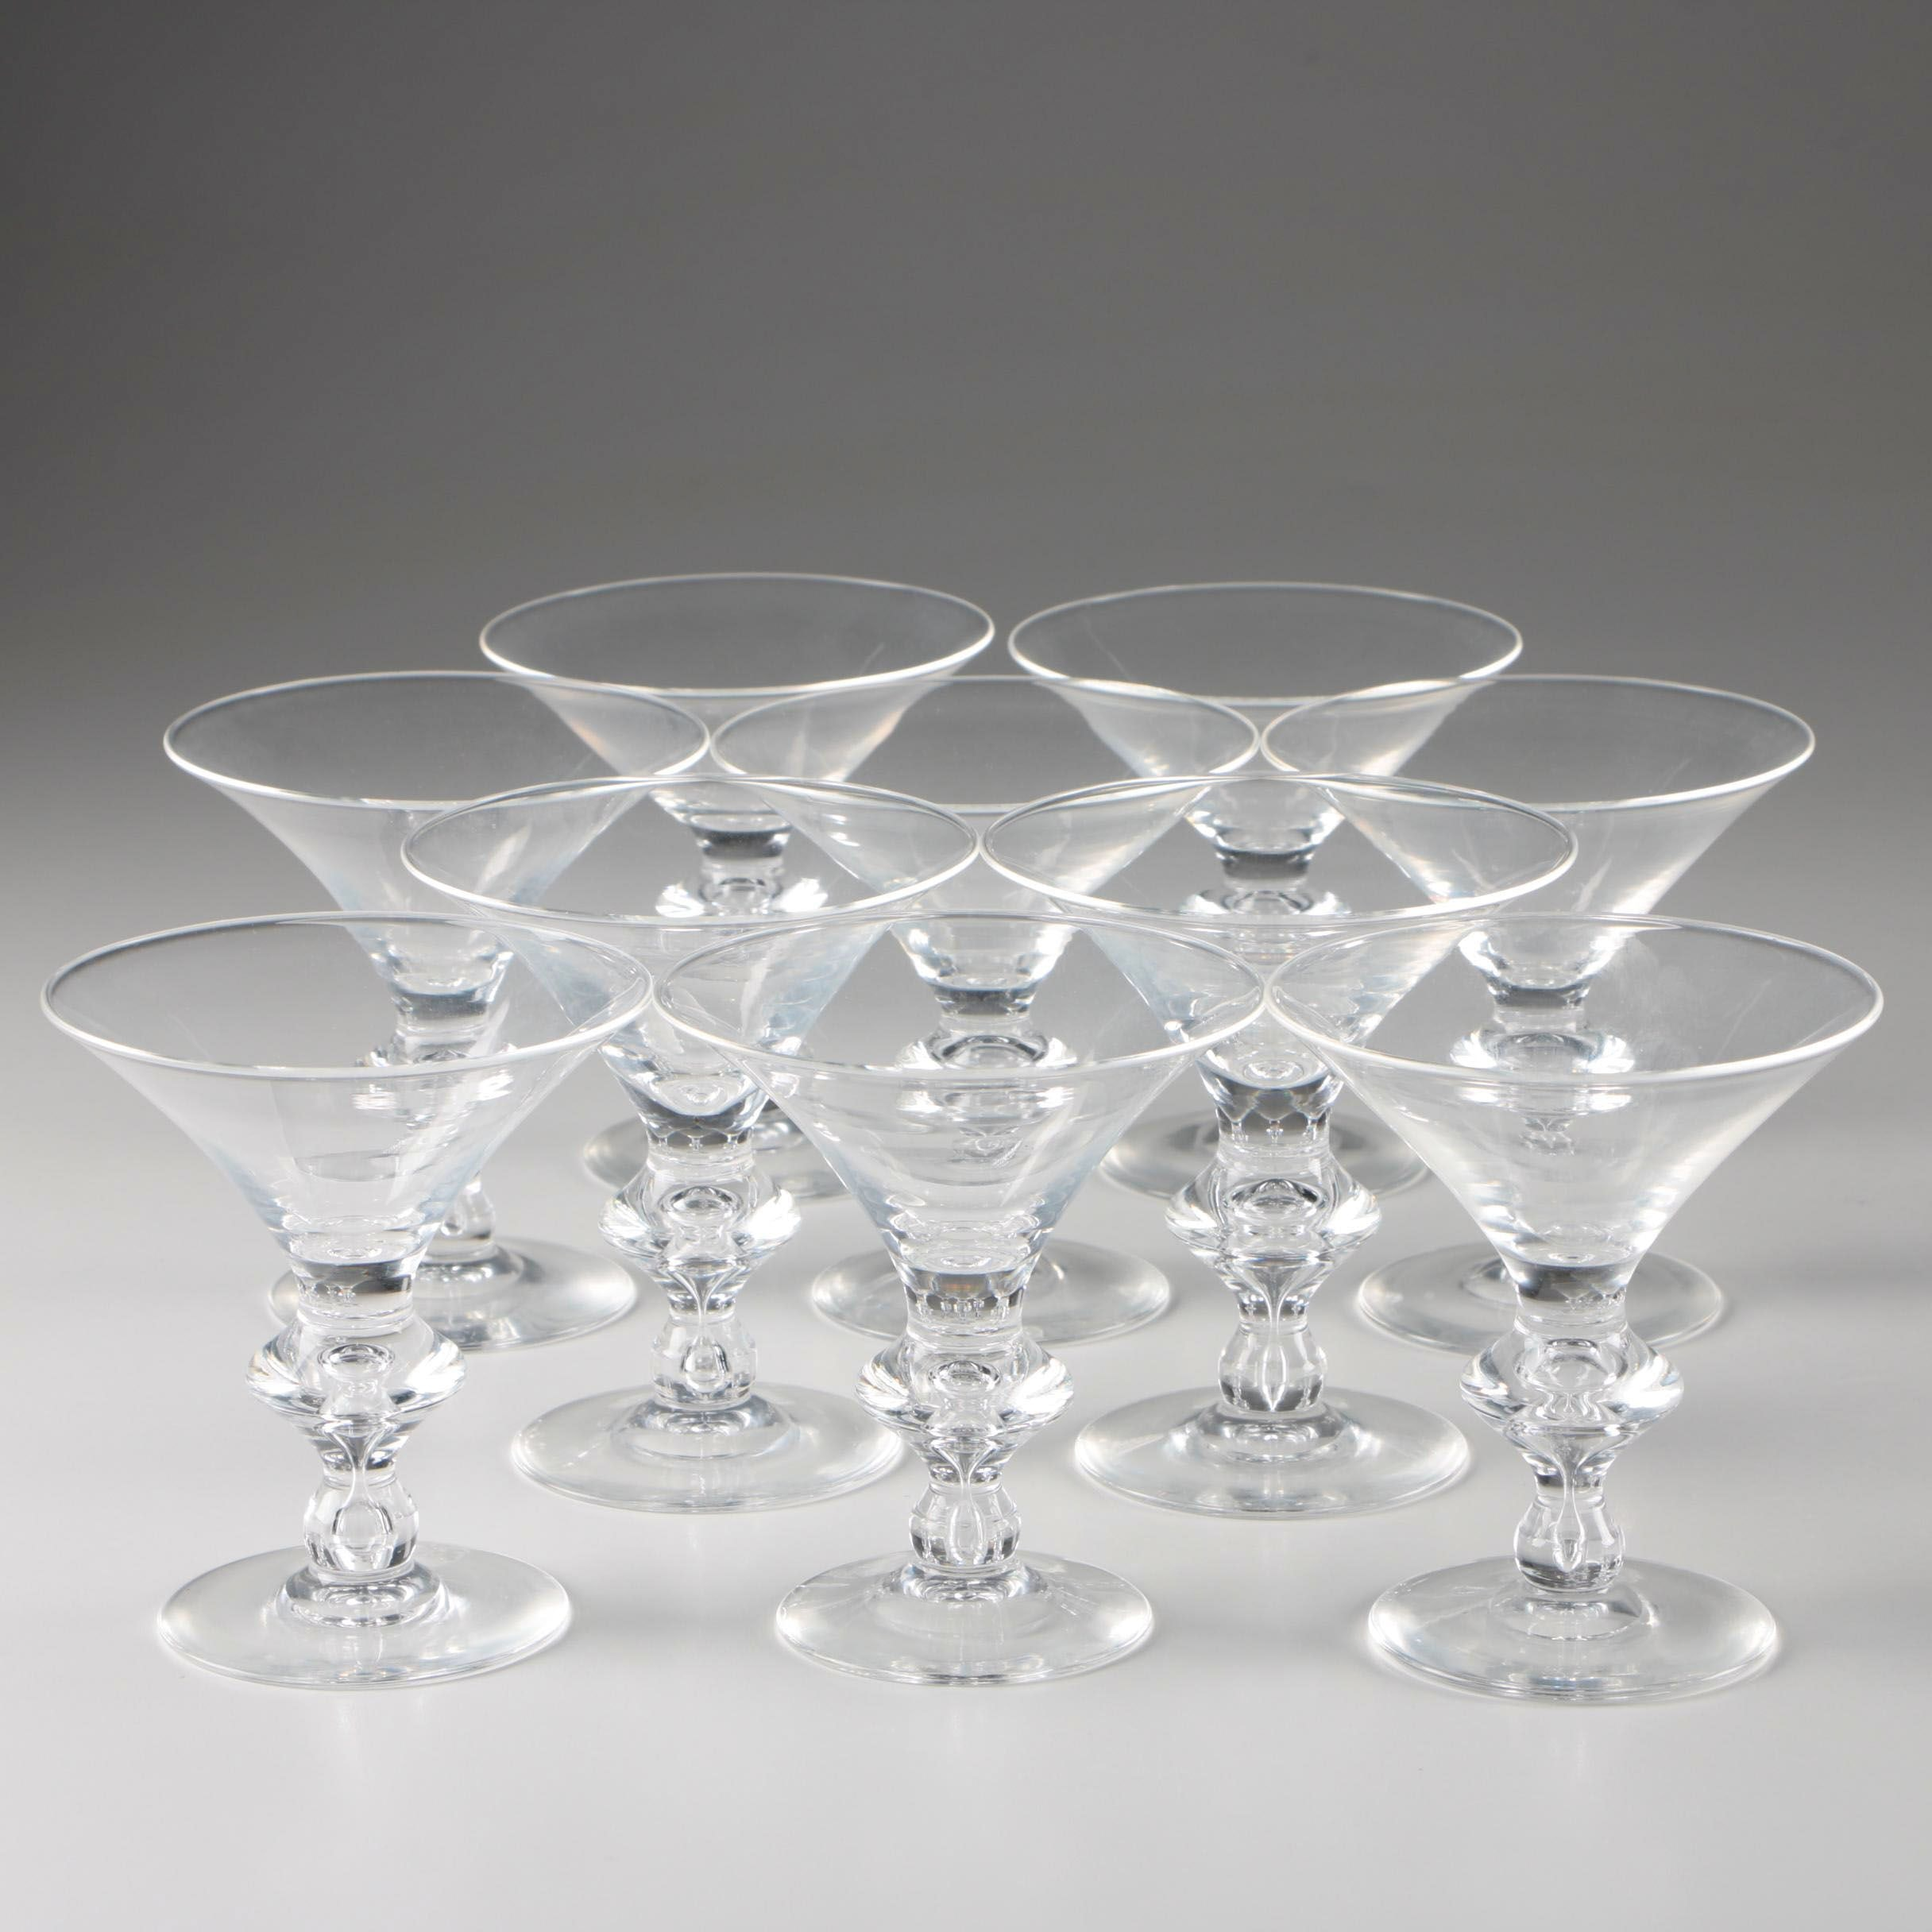 Steuben Art Glass Champagne Coupes, Mid-Century